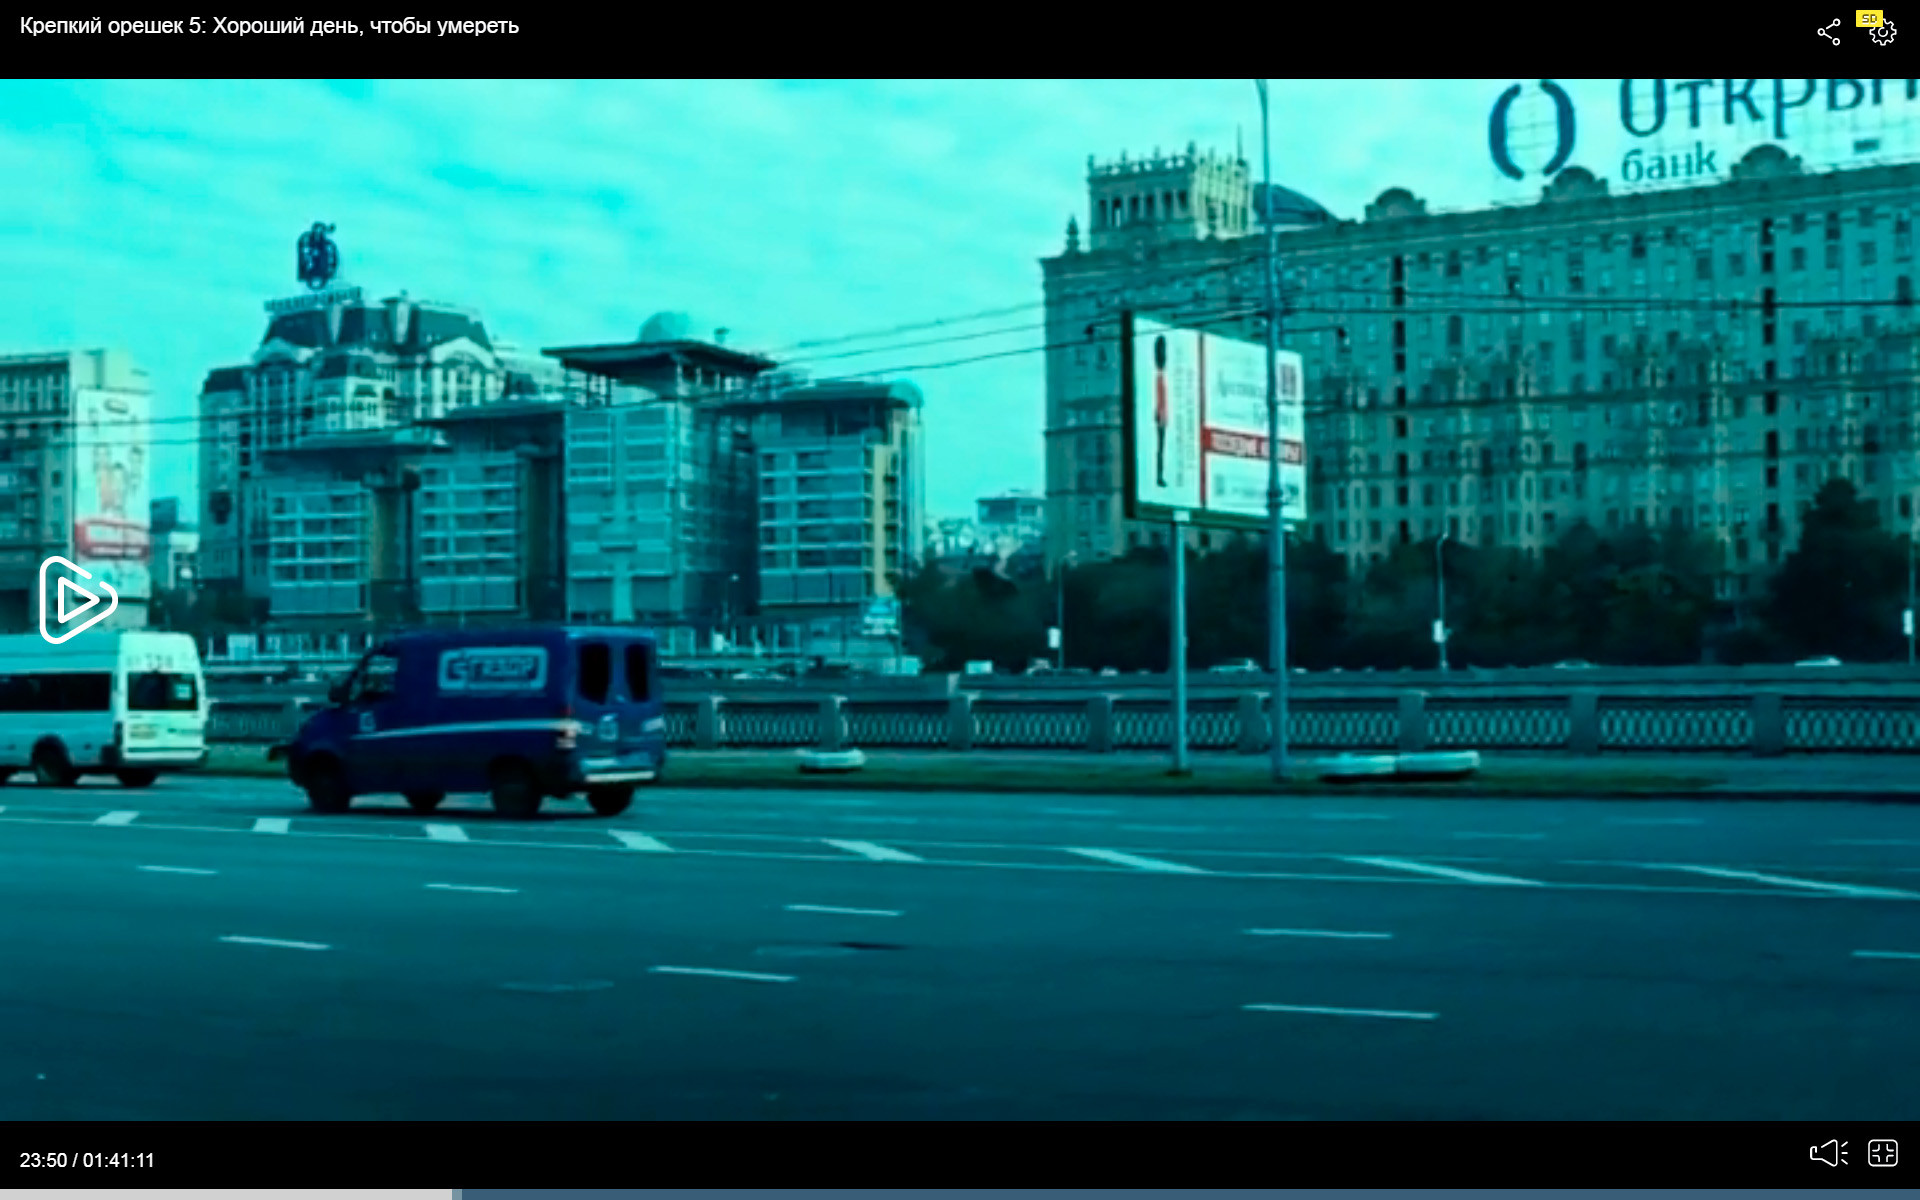 This, however, is a genuine view of Moscow, featuring the British Embassy on Smolenskaya Embankment